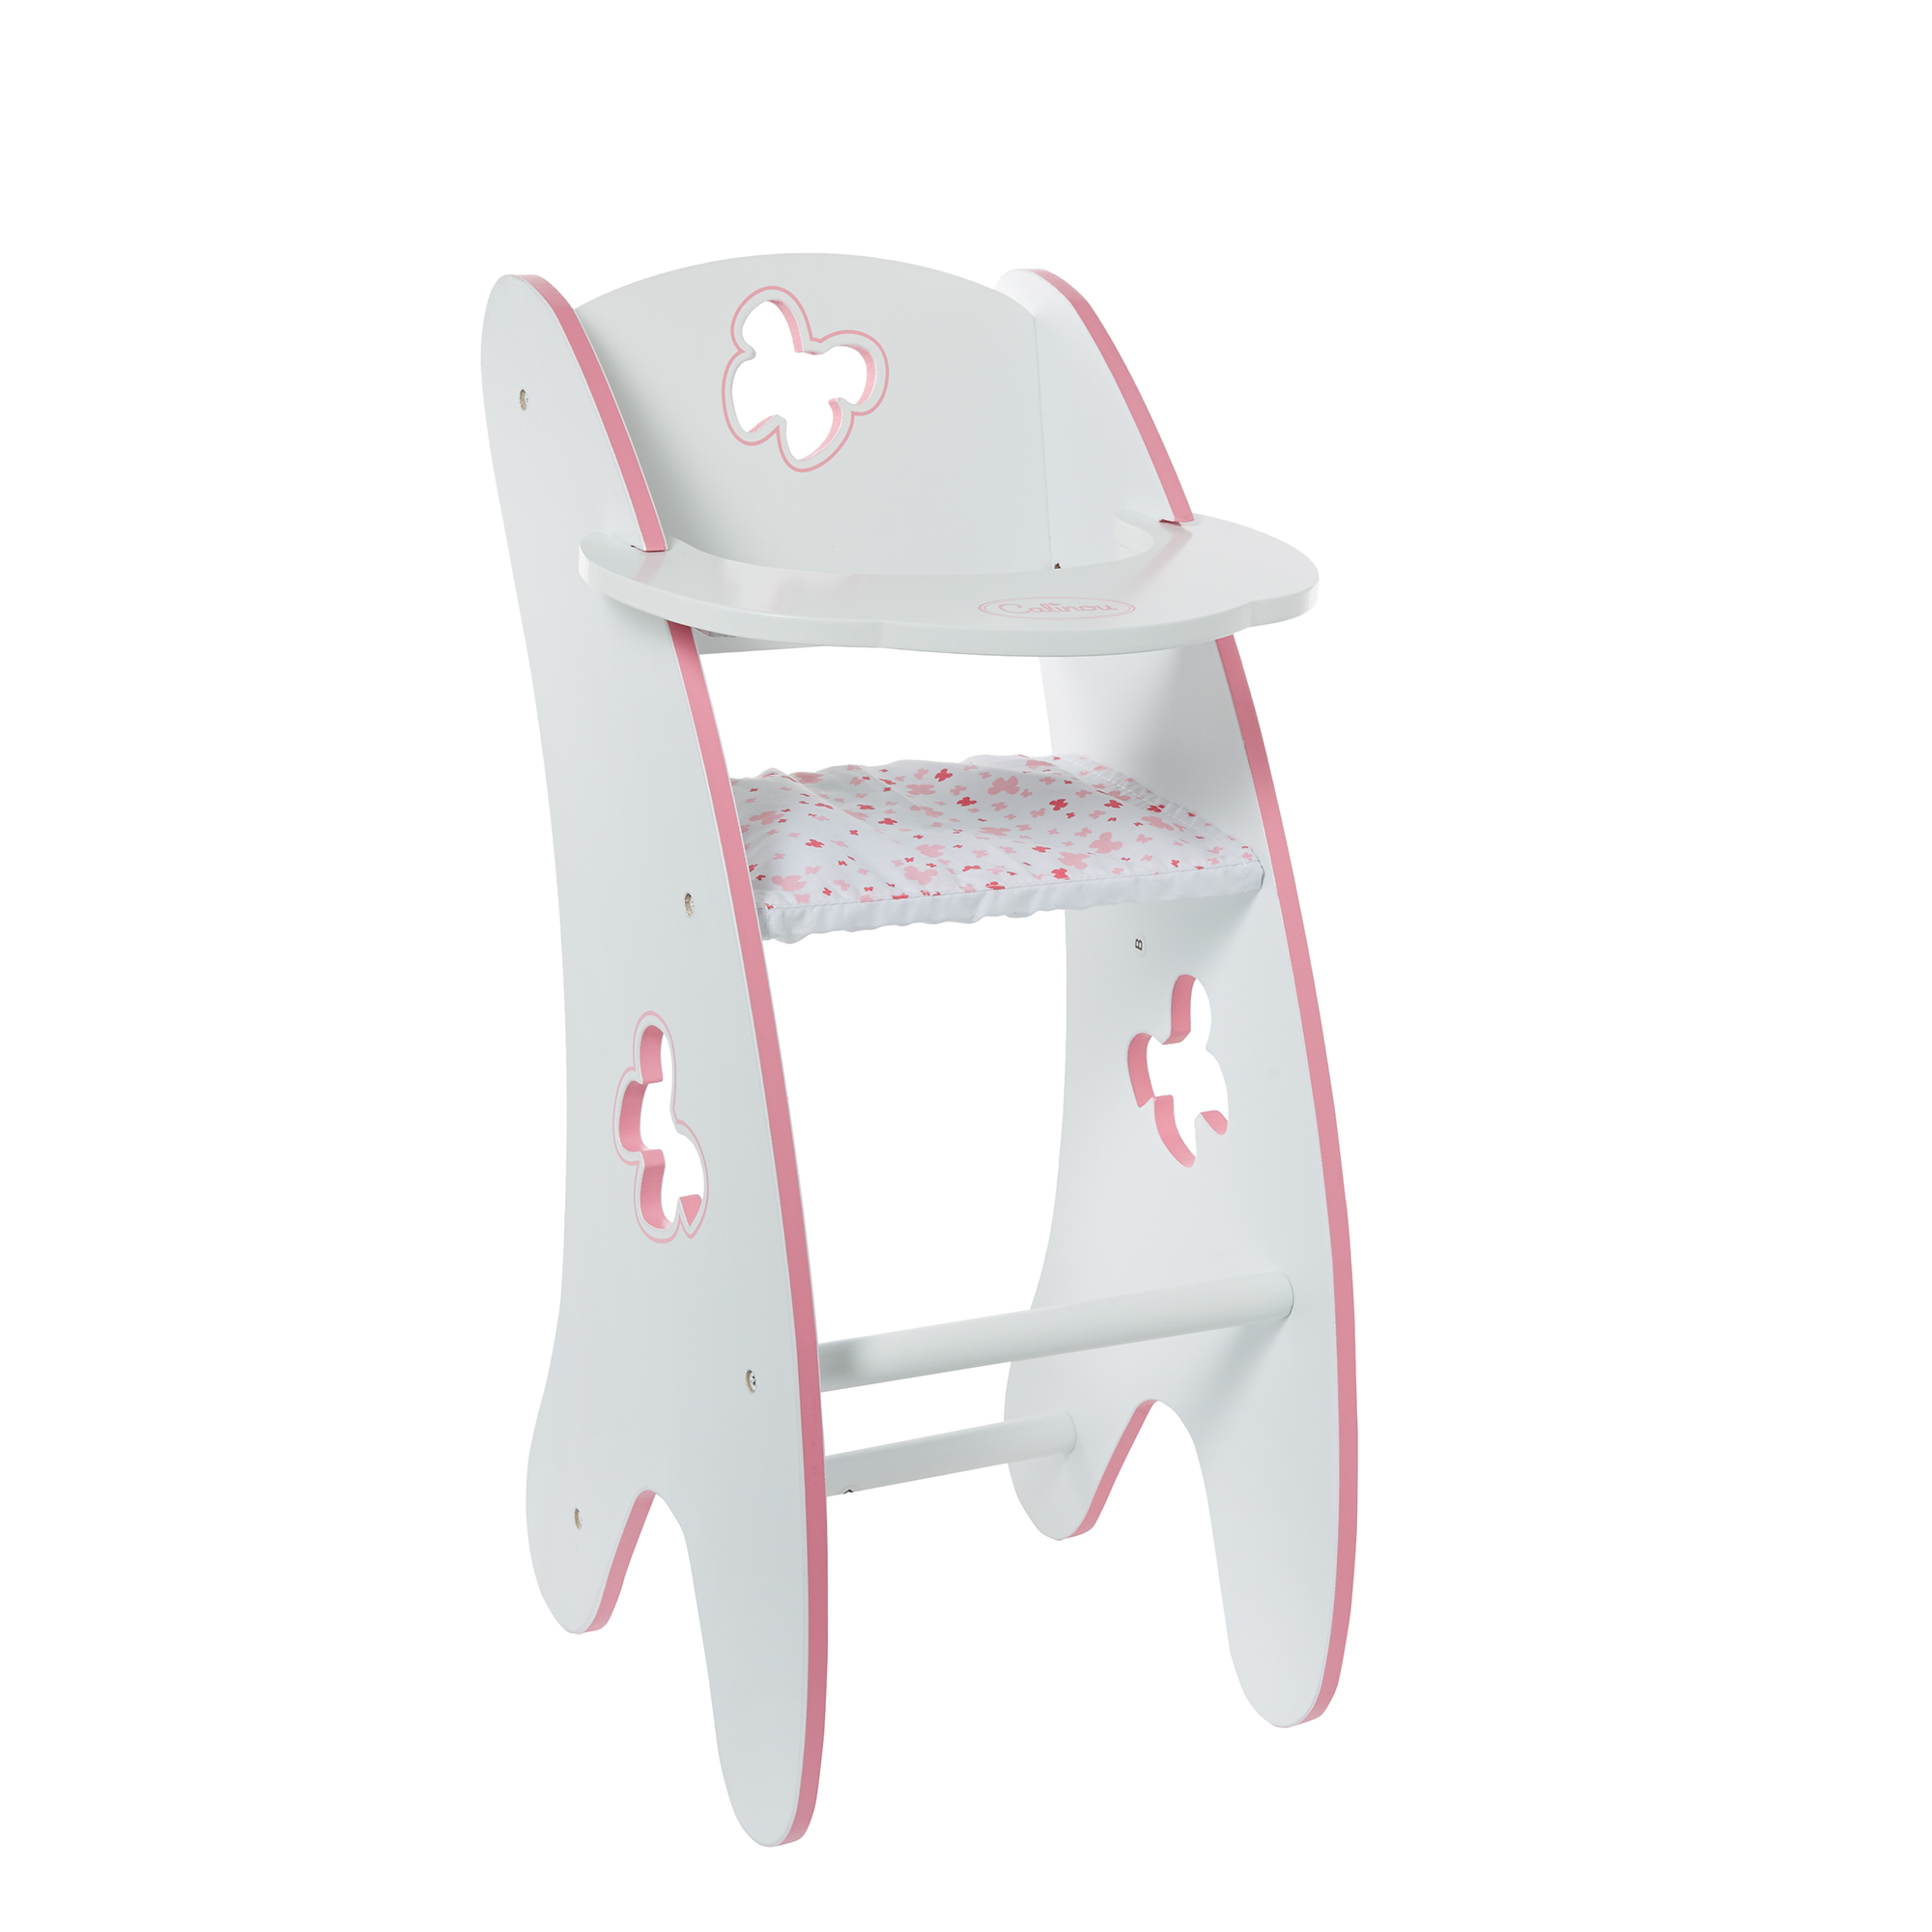 Buy High Chair Buy Cheap Doll High Chair Compare Dolls Prices For Best